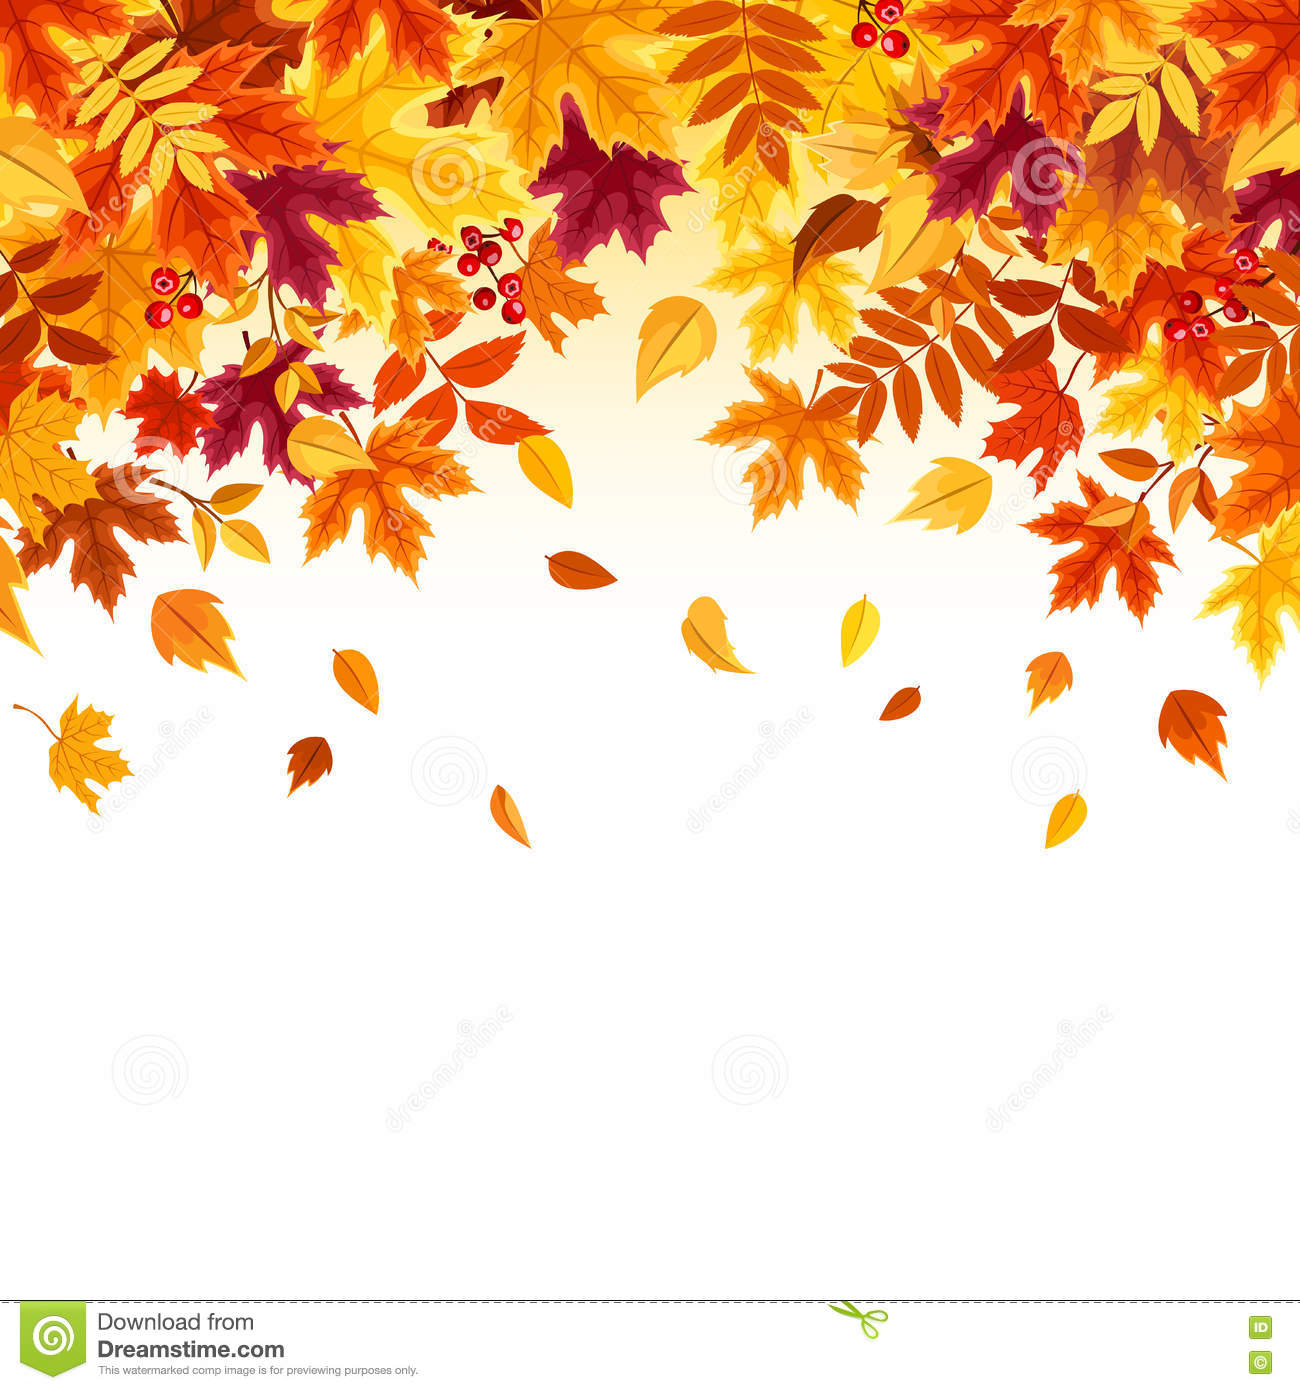 background with colorful falling autumn leaves vector illustration rh dreamstime com fall leaves vector art fall leaves vector image